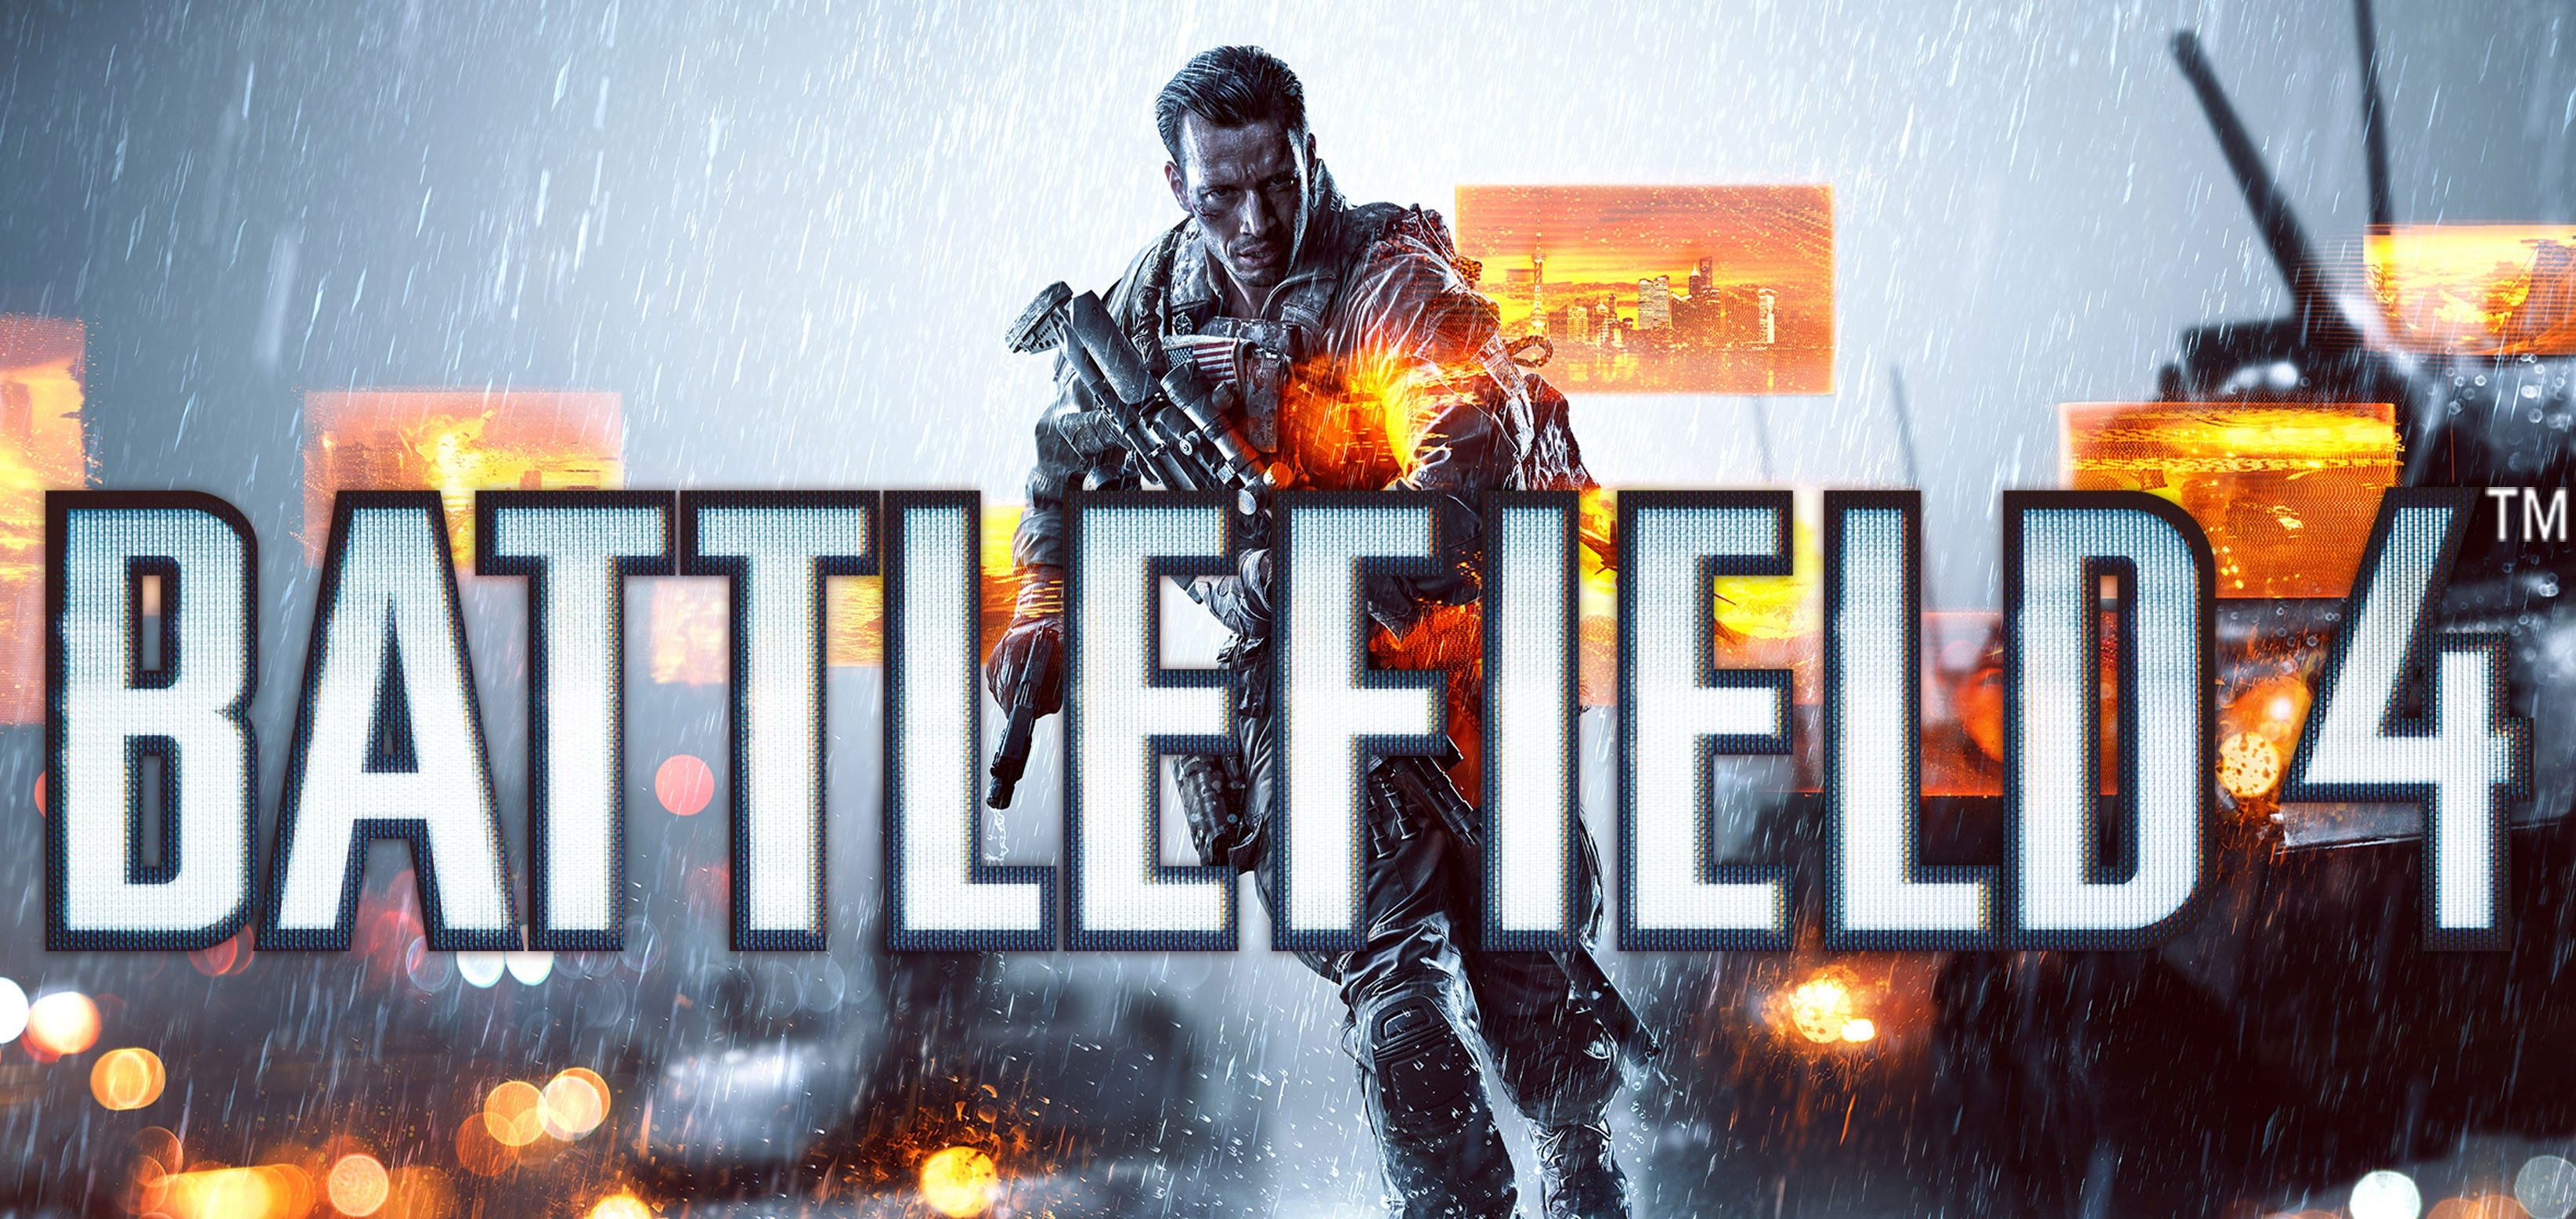 Battlefield 4 Sticks 720P/60 FPS on Next-Gen Consoles - Frostbite ...